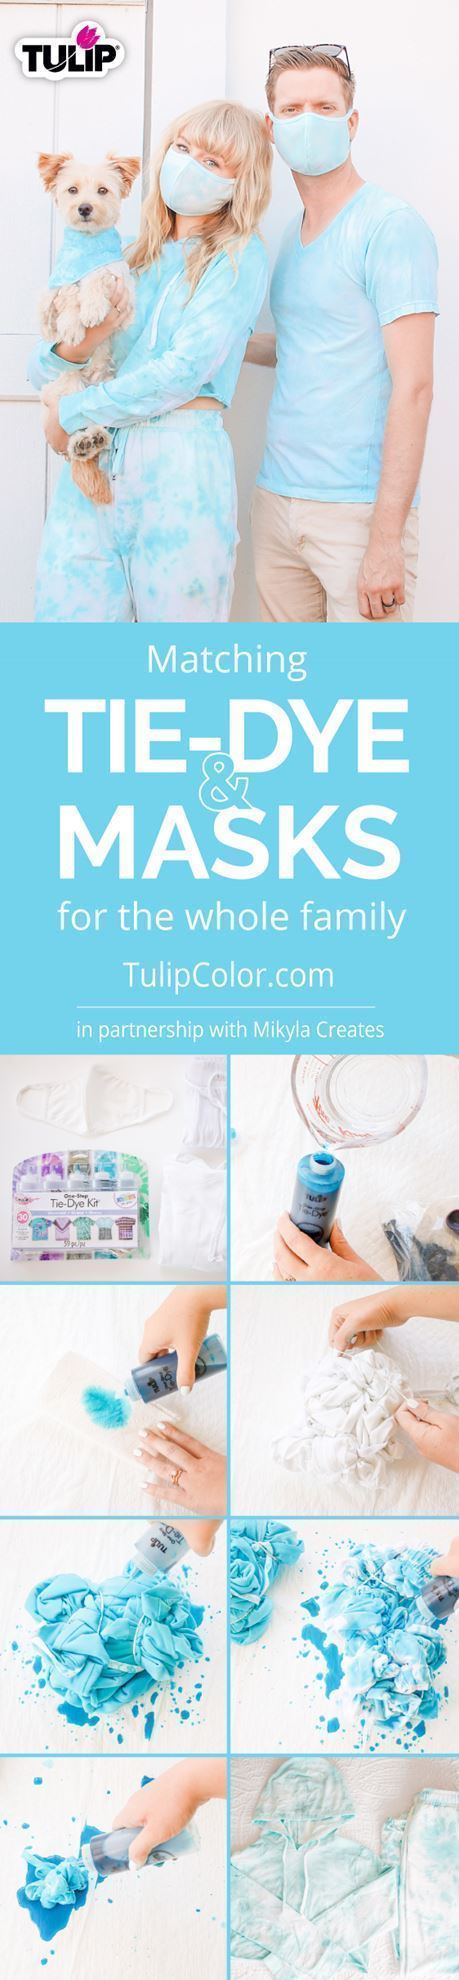 Tie Dye Matching Sweatsuits and Masks for the Whole Fam